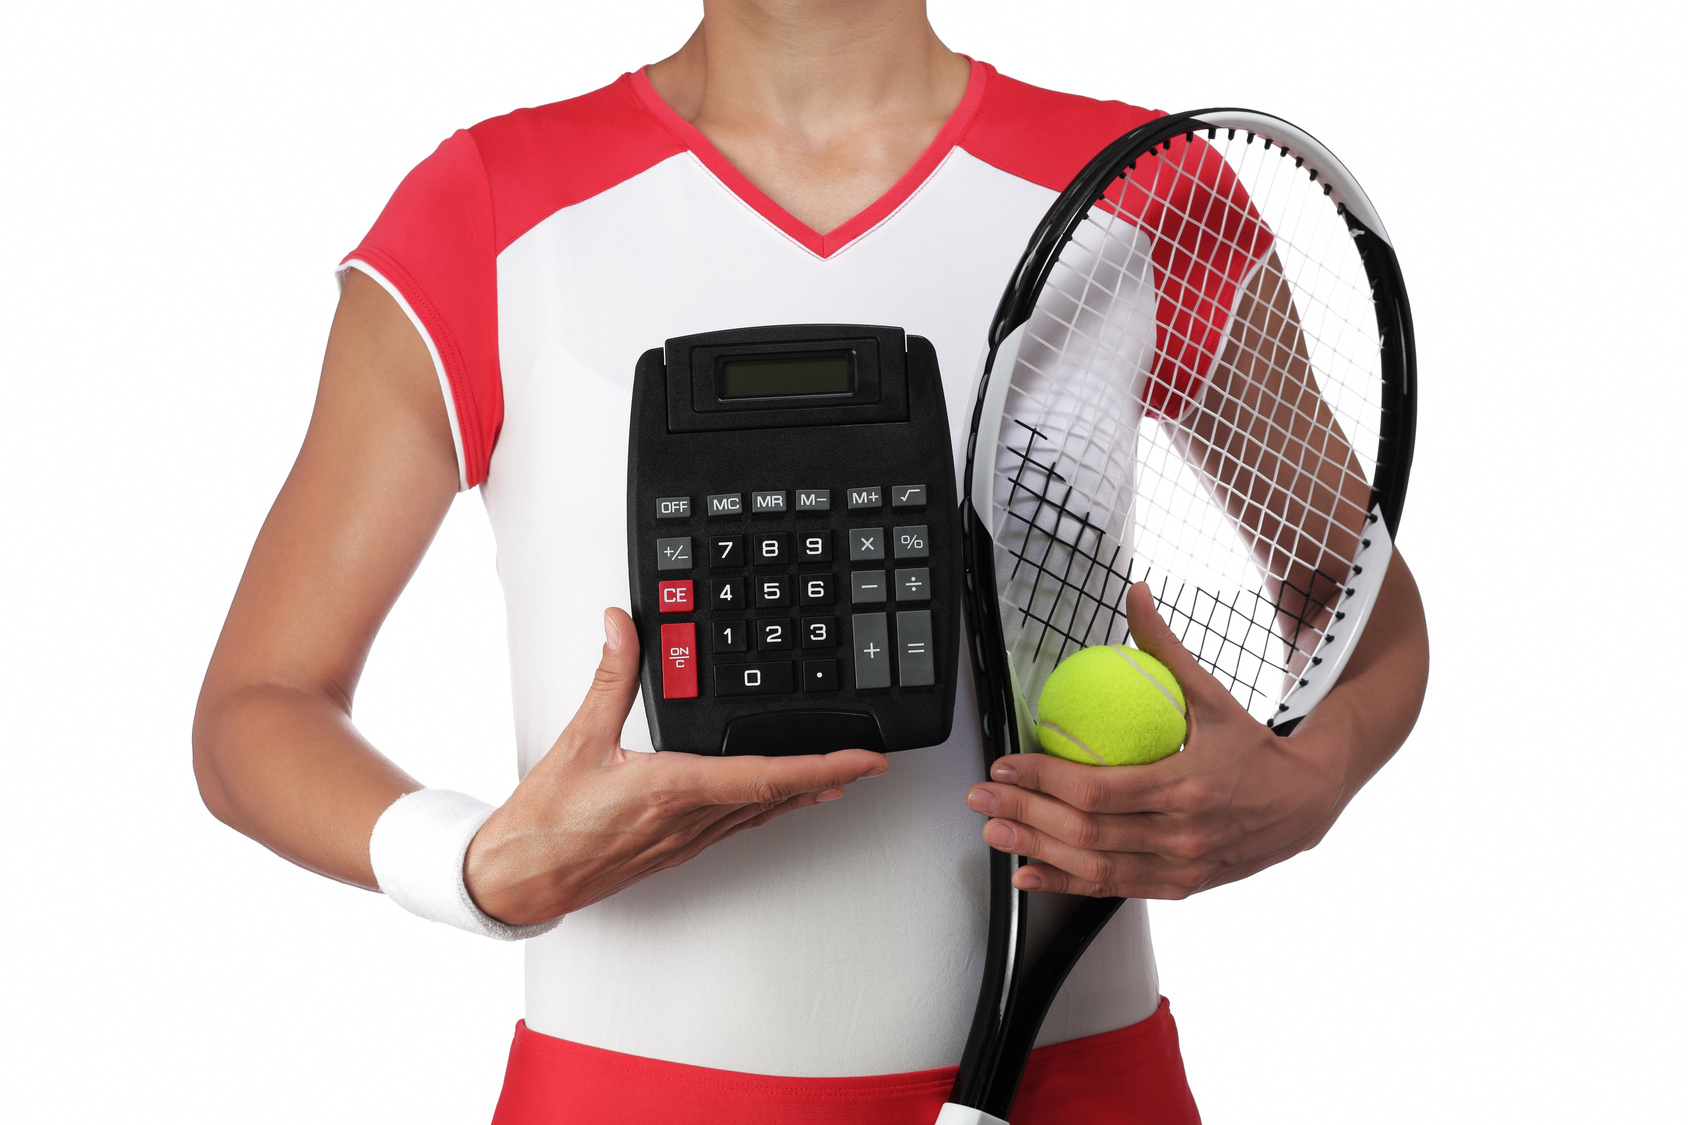 female tennis player holding a calculator